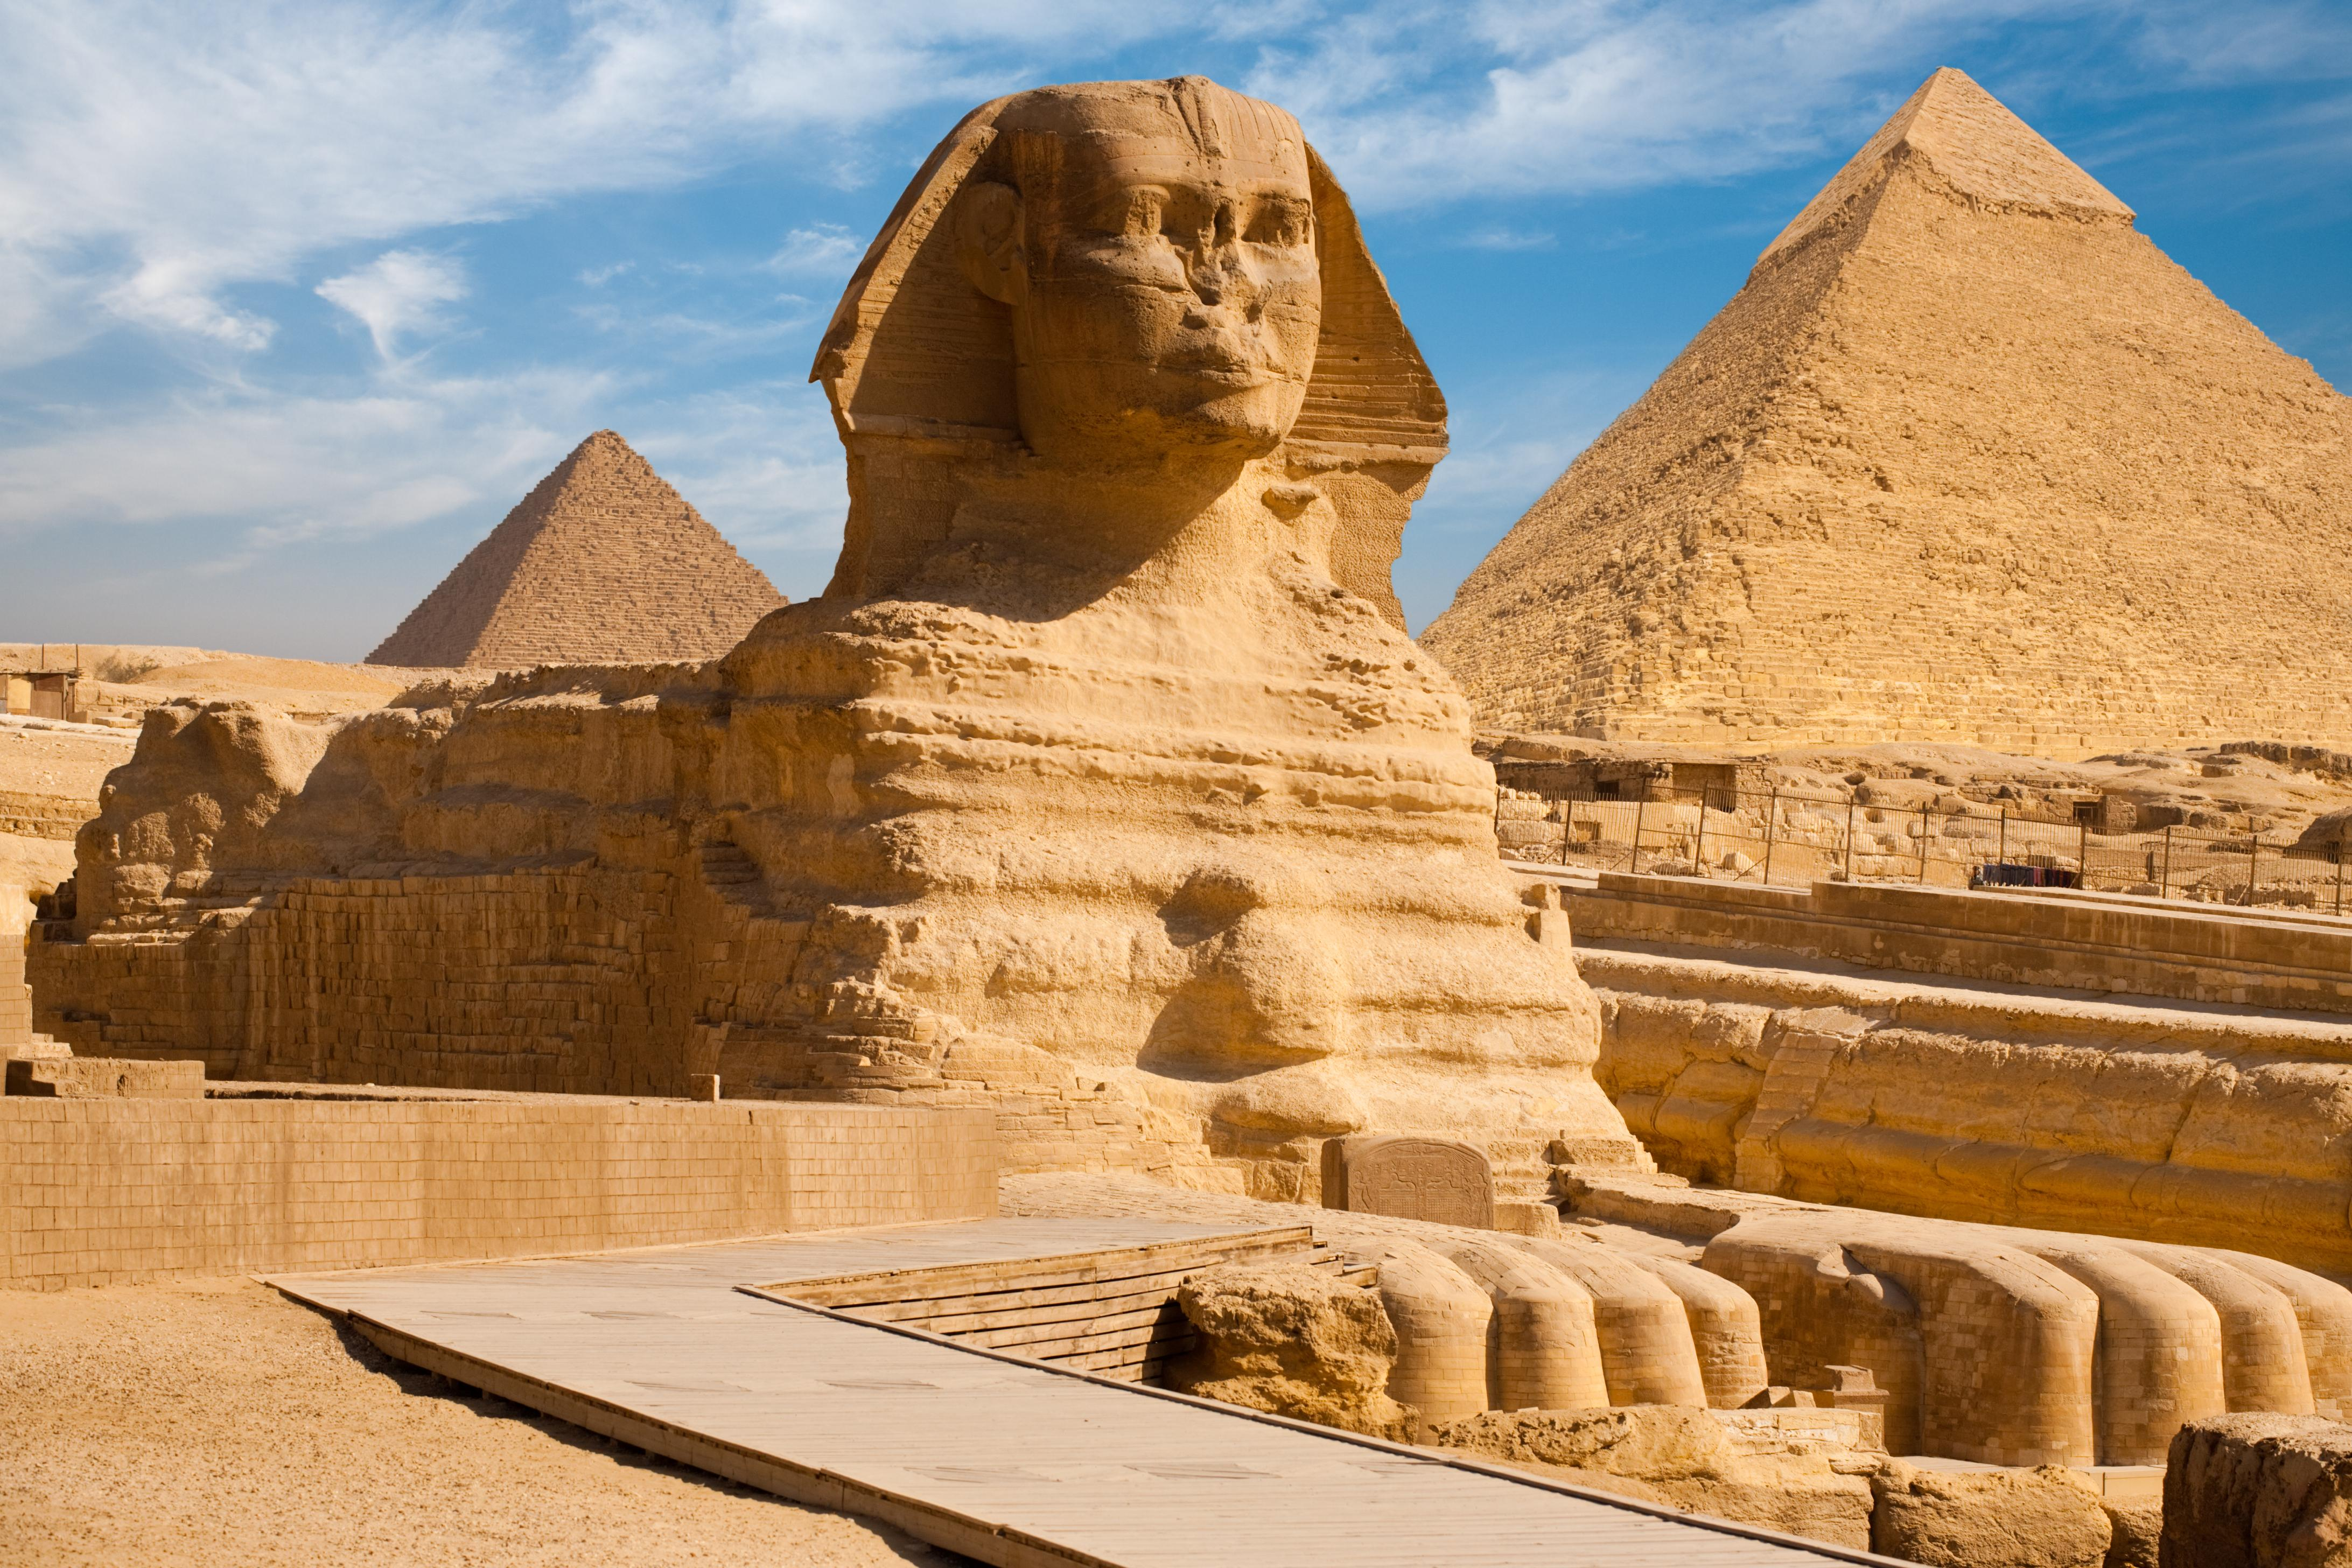 Pyramids of Giza with the Sphinx in the foreground